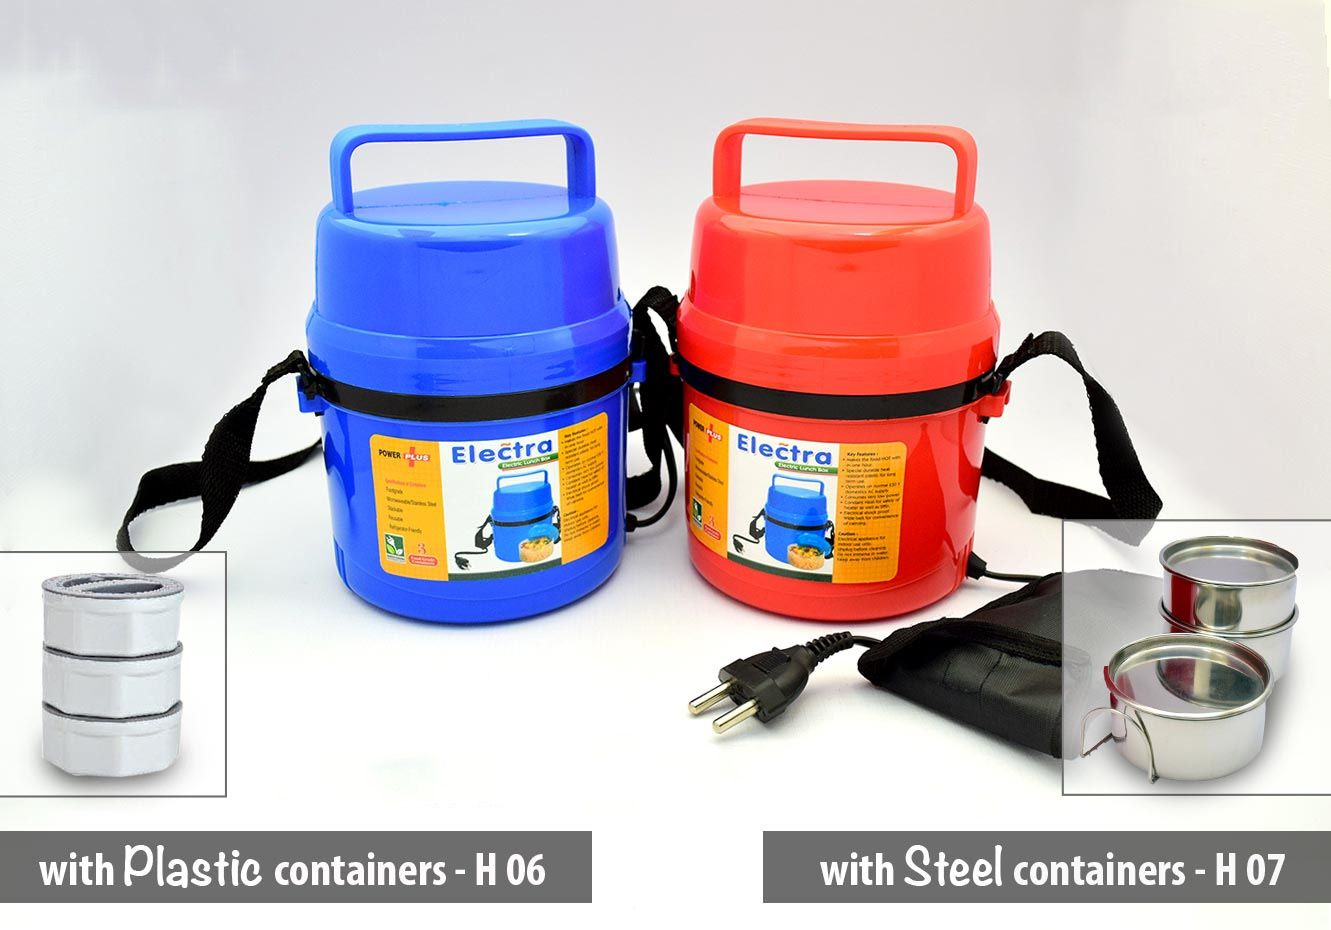 Power Plus Power Plus Electra Lunch Box Steel - 3 Container H07